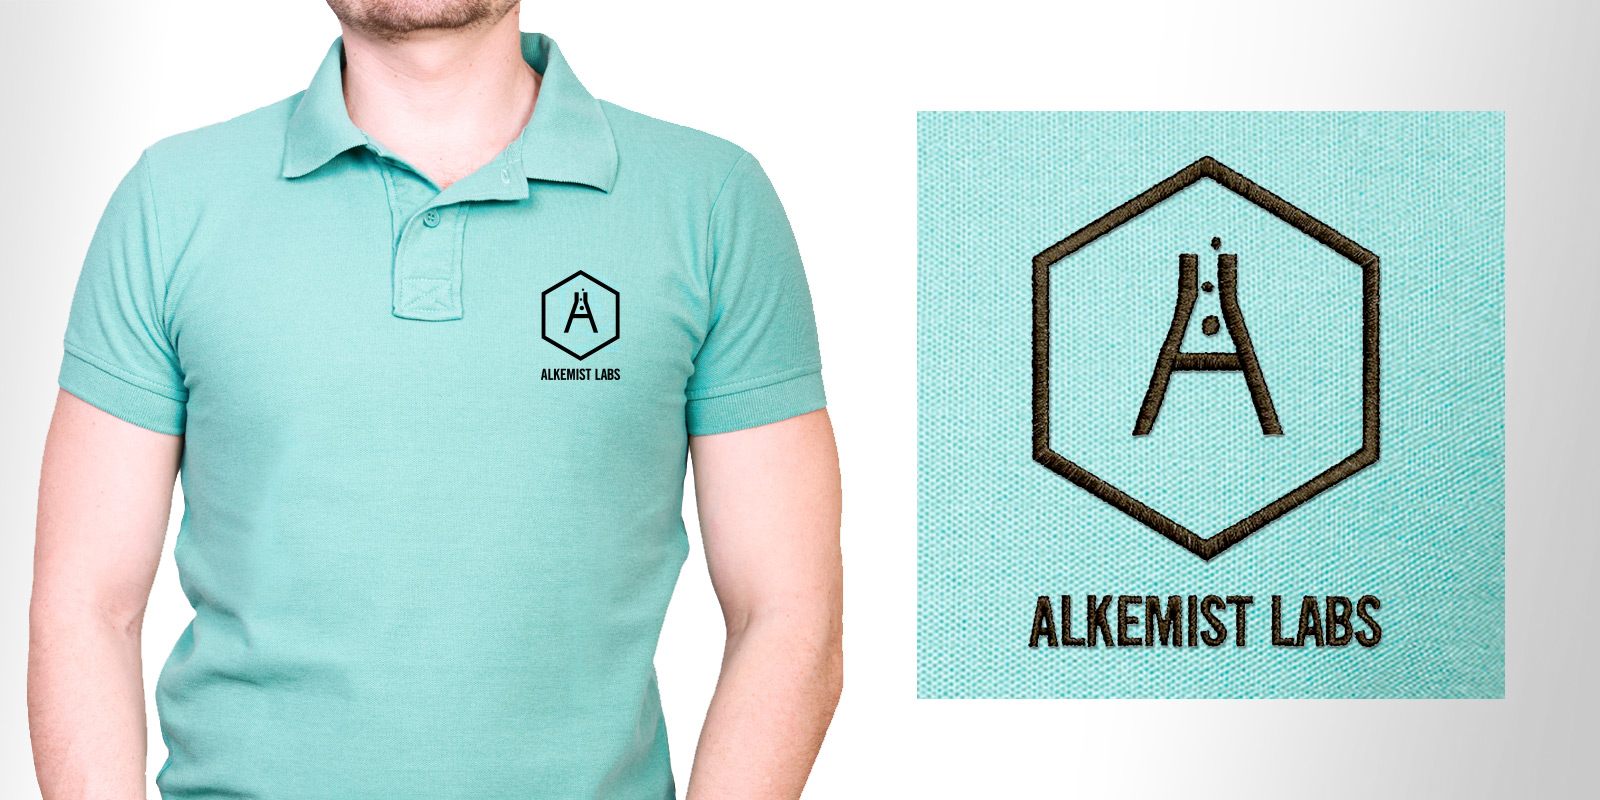 mslk-alkemist-polo-shirt1